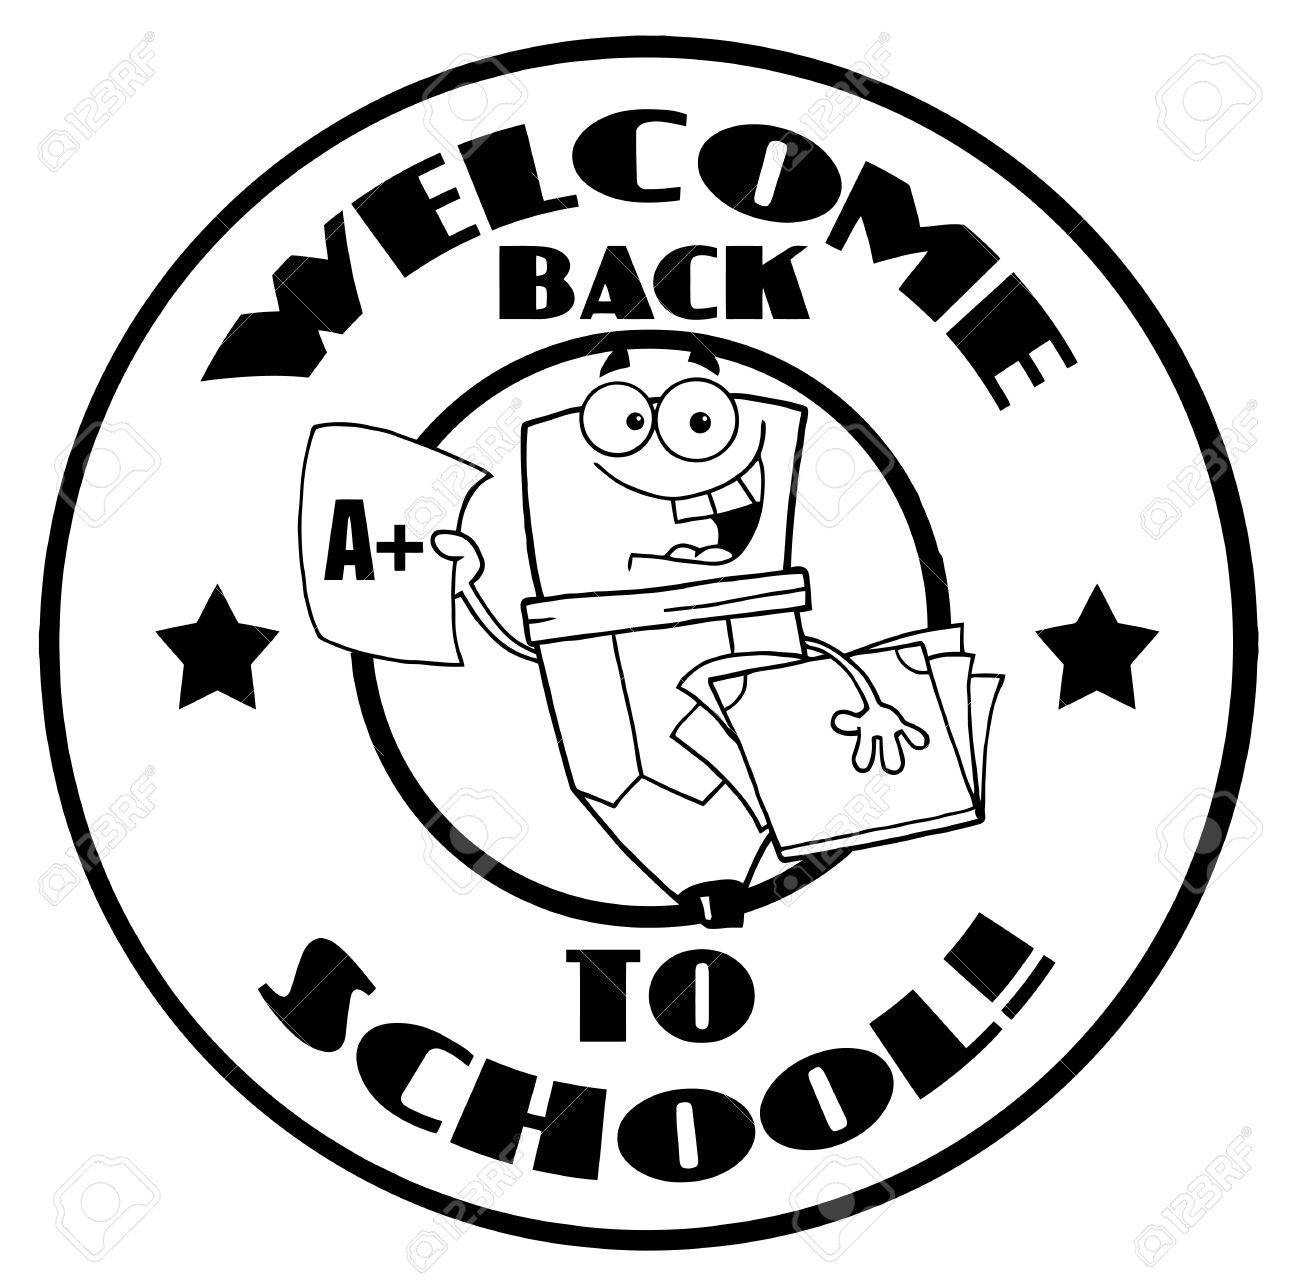 back to school clipart free black and white